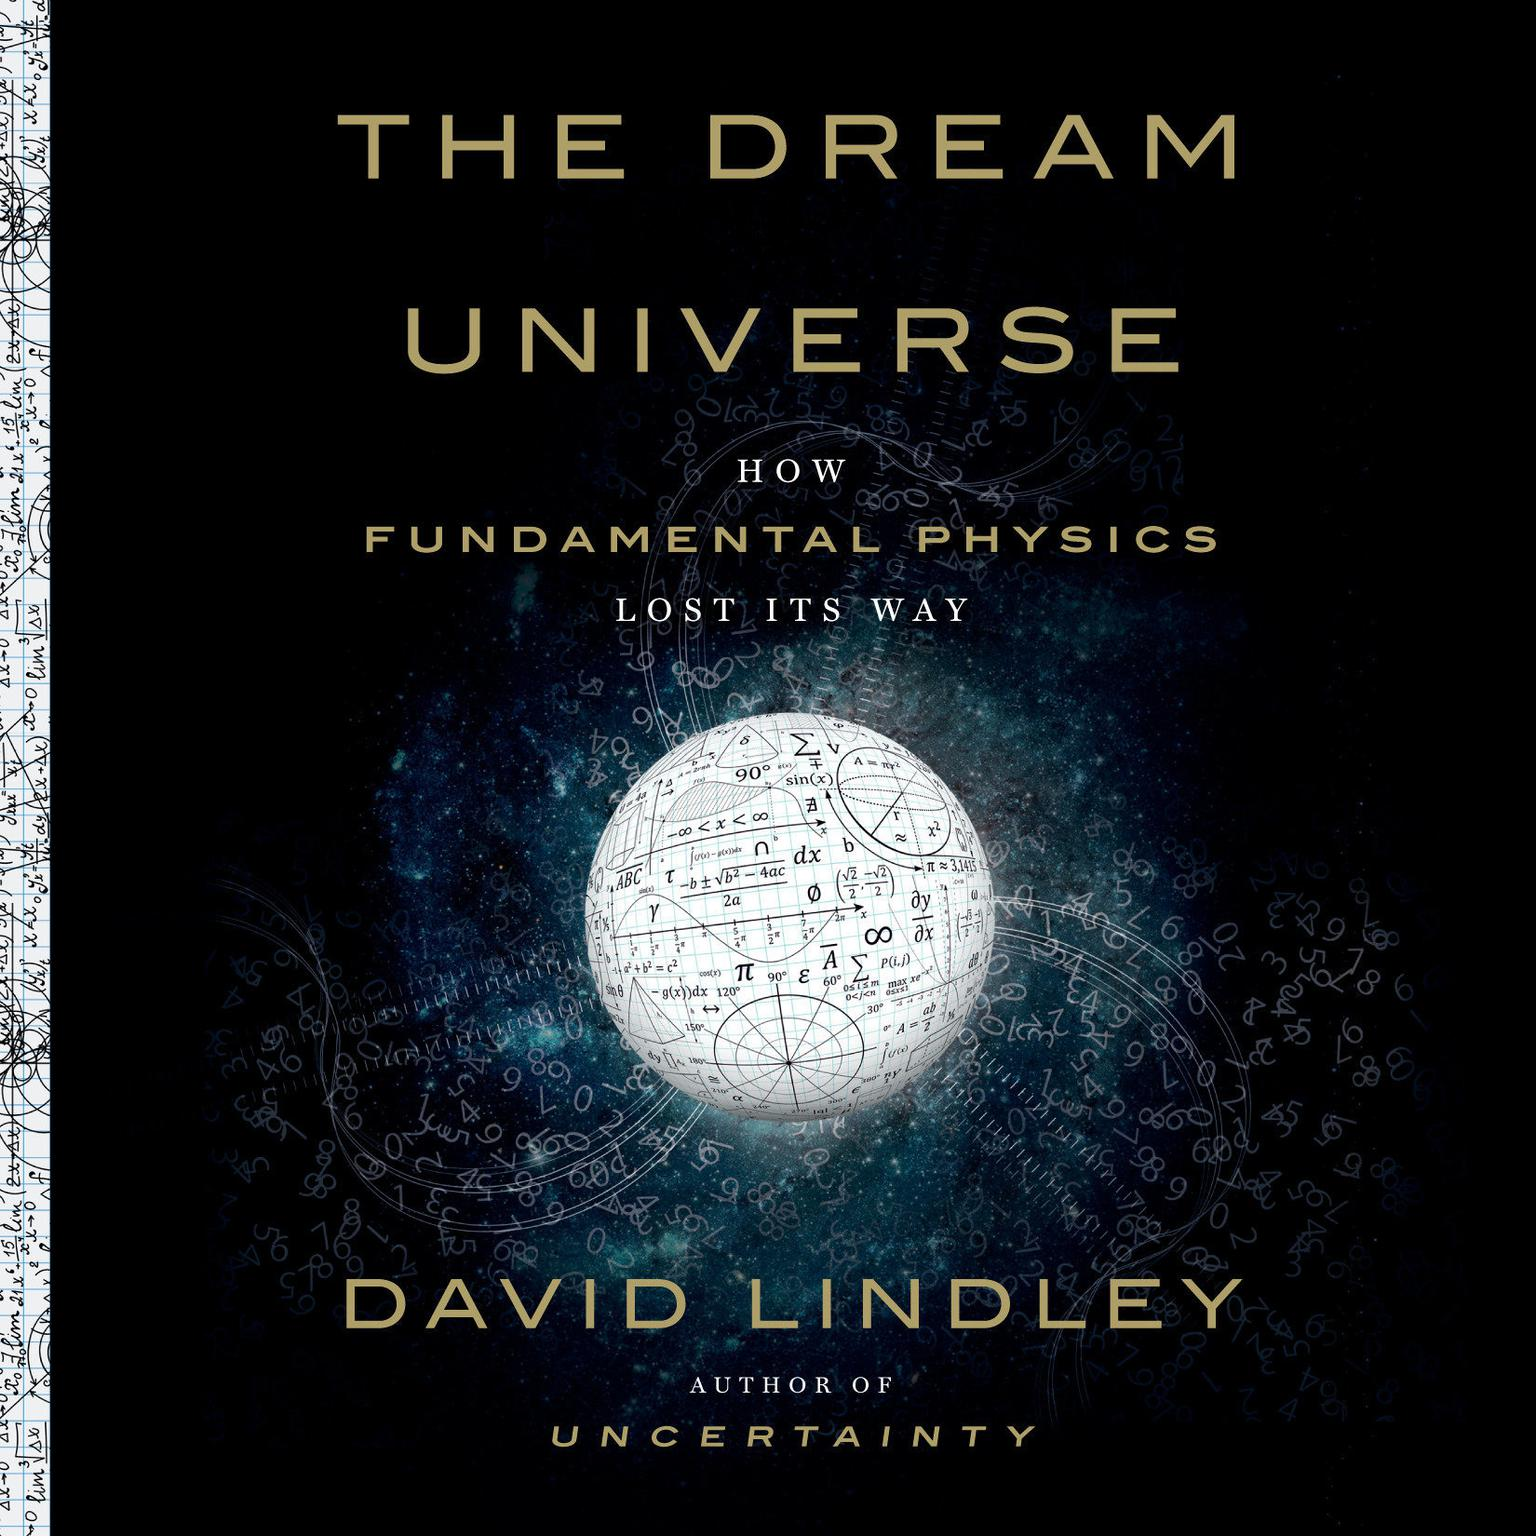 The Dream Universe: How Fundamental Physics Lost Its Way Audiobook, by David Lindley